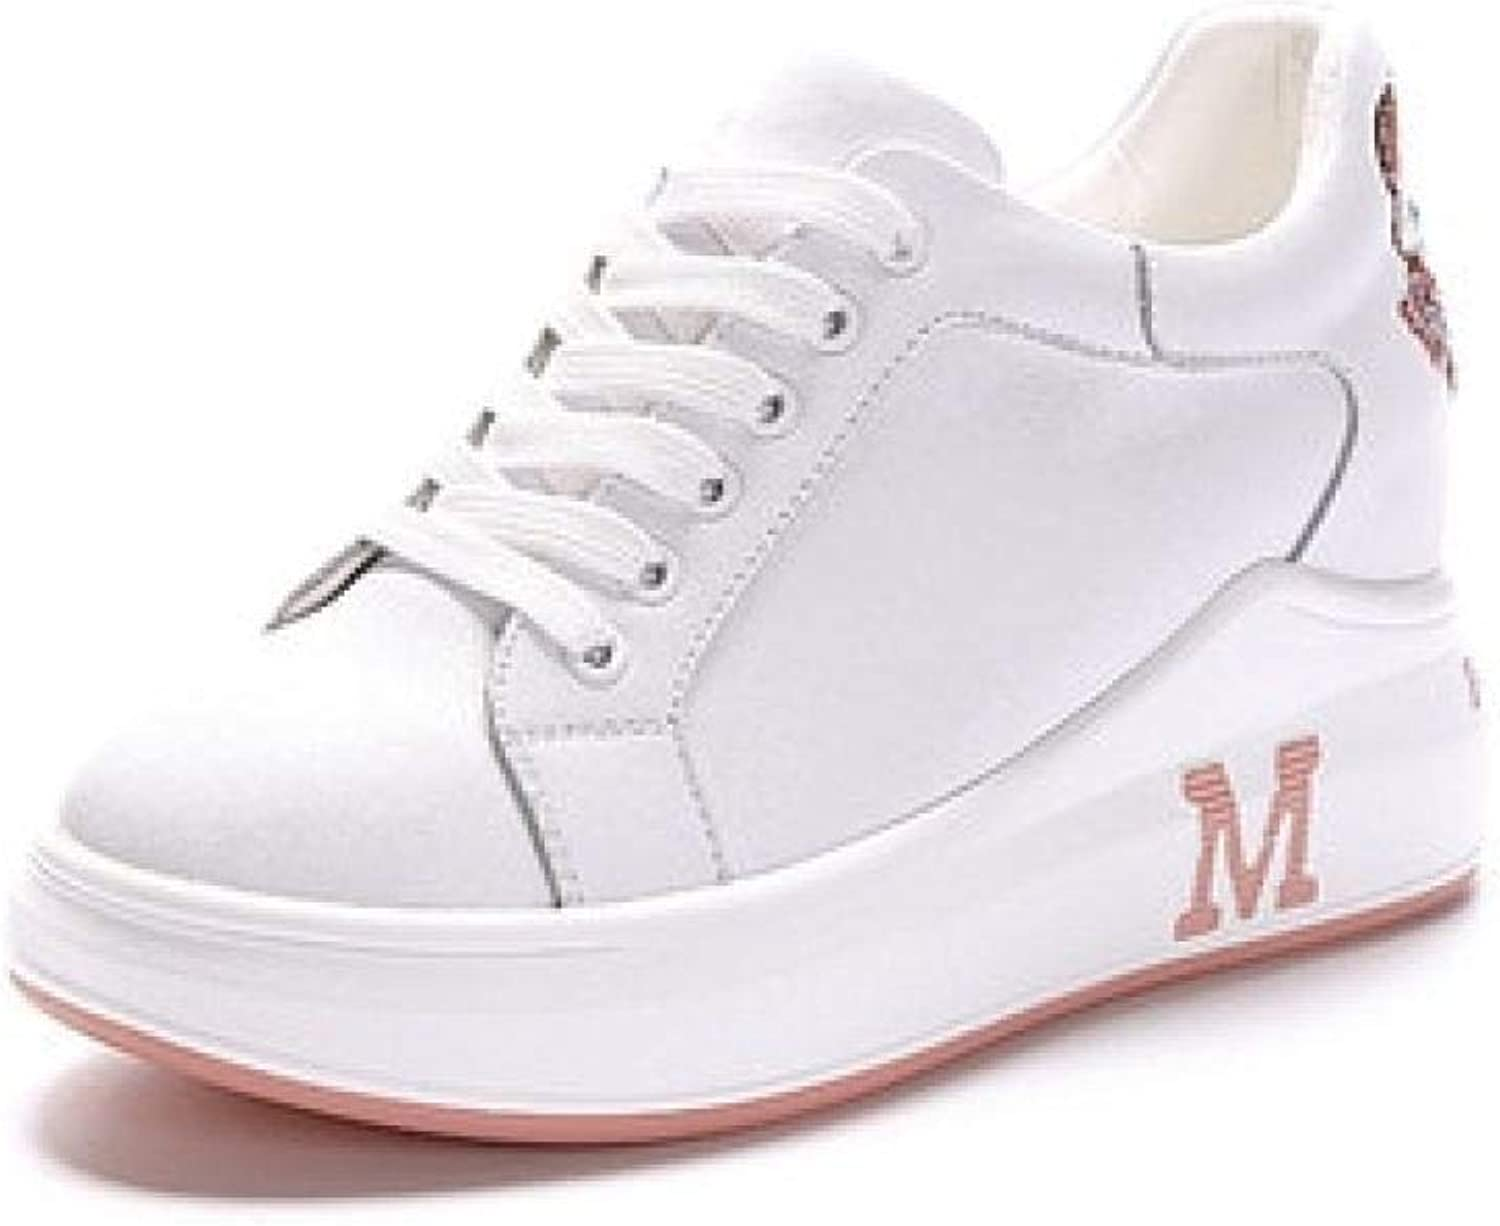 Fashion shoesbox Wedges Sneakers for Womens Girls Increasing Height Cross Strap Leisure Slip Resistant Trendy Trainers shoes